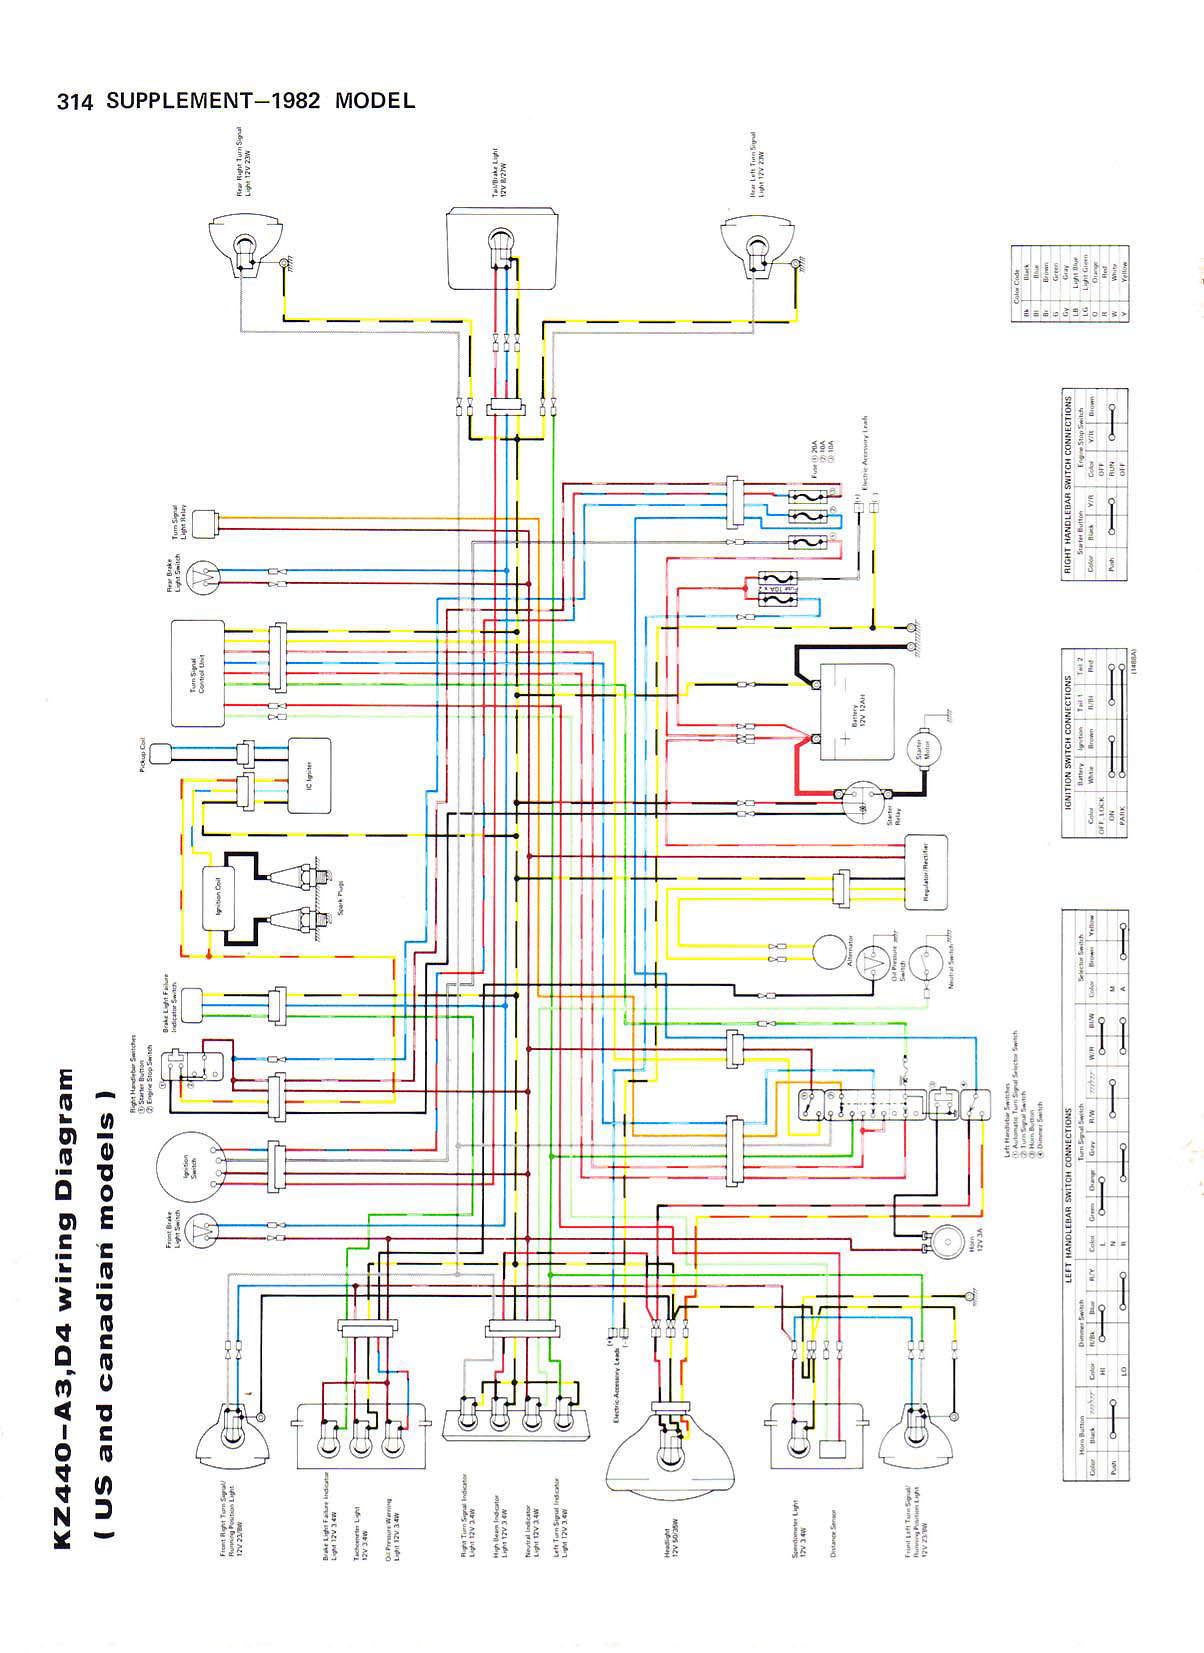 Kz400 Wiring Diagram Simple 1977 Kawasaki Kz200 Index Of Kz440 Diagrams Case 400 Kz 440 80 A